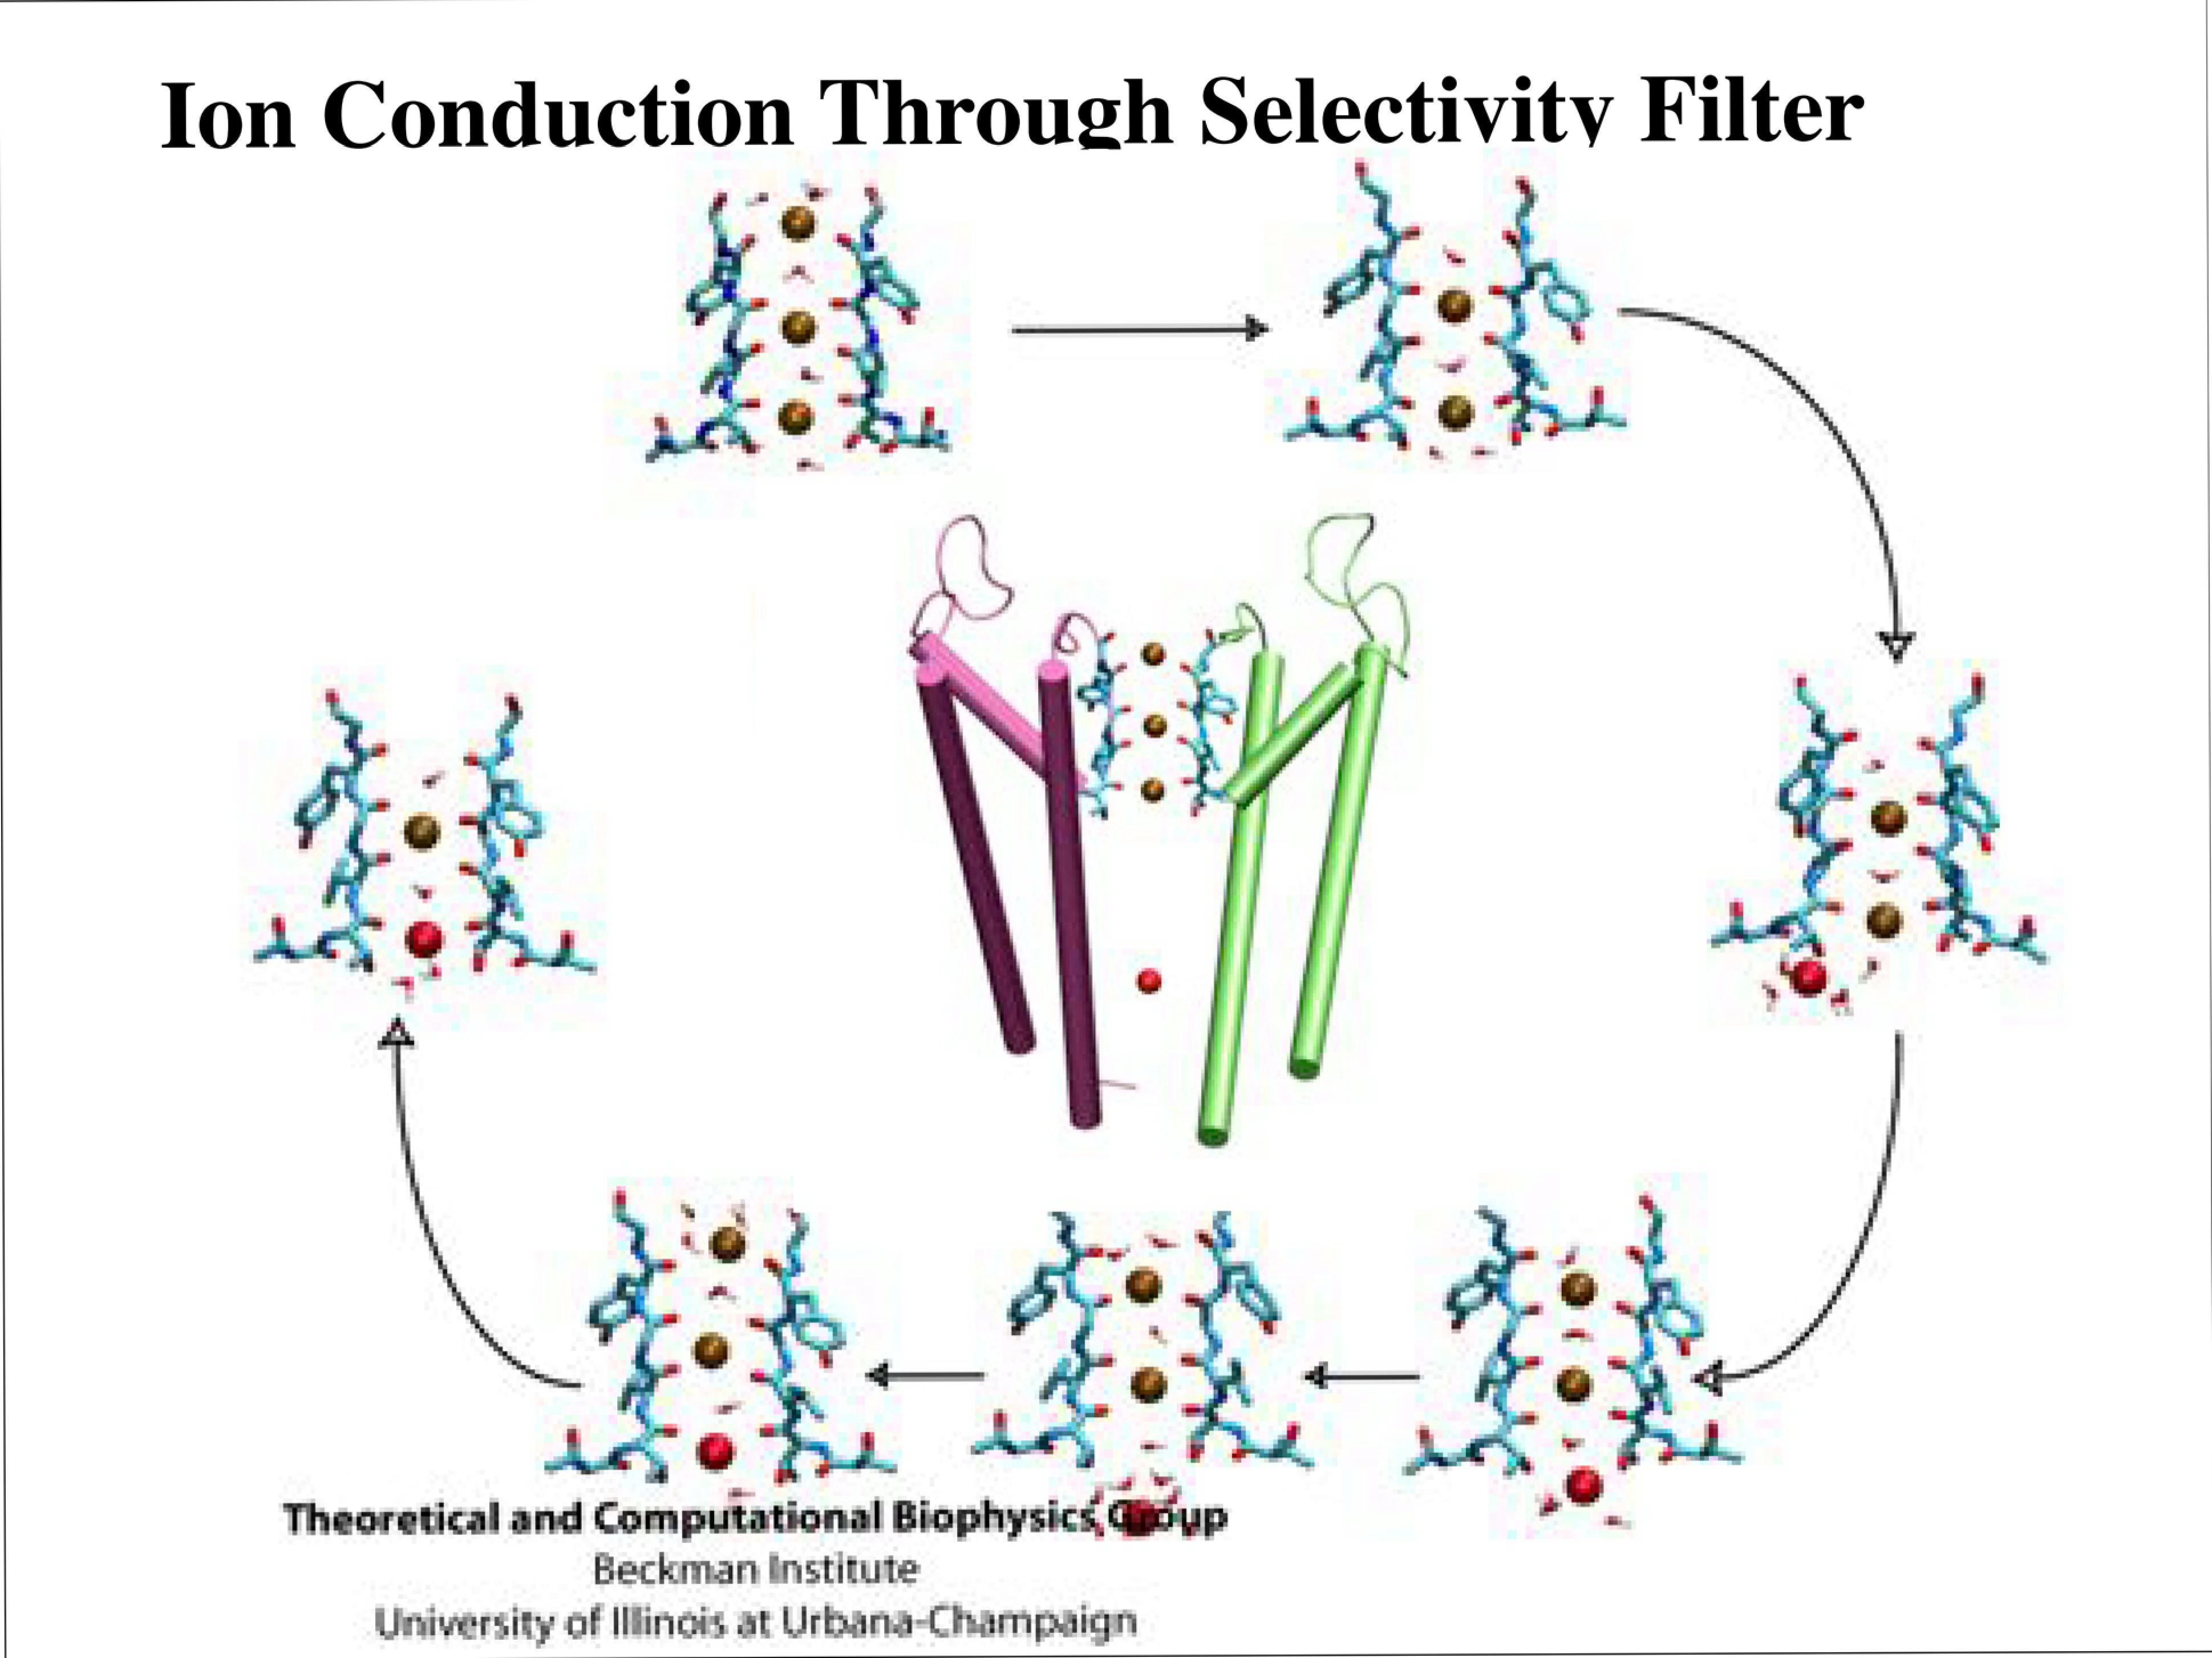 Slide 6: Ion Conduction Through Selectivity Filter